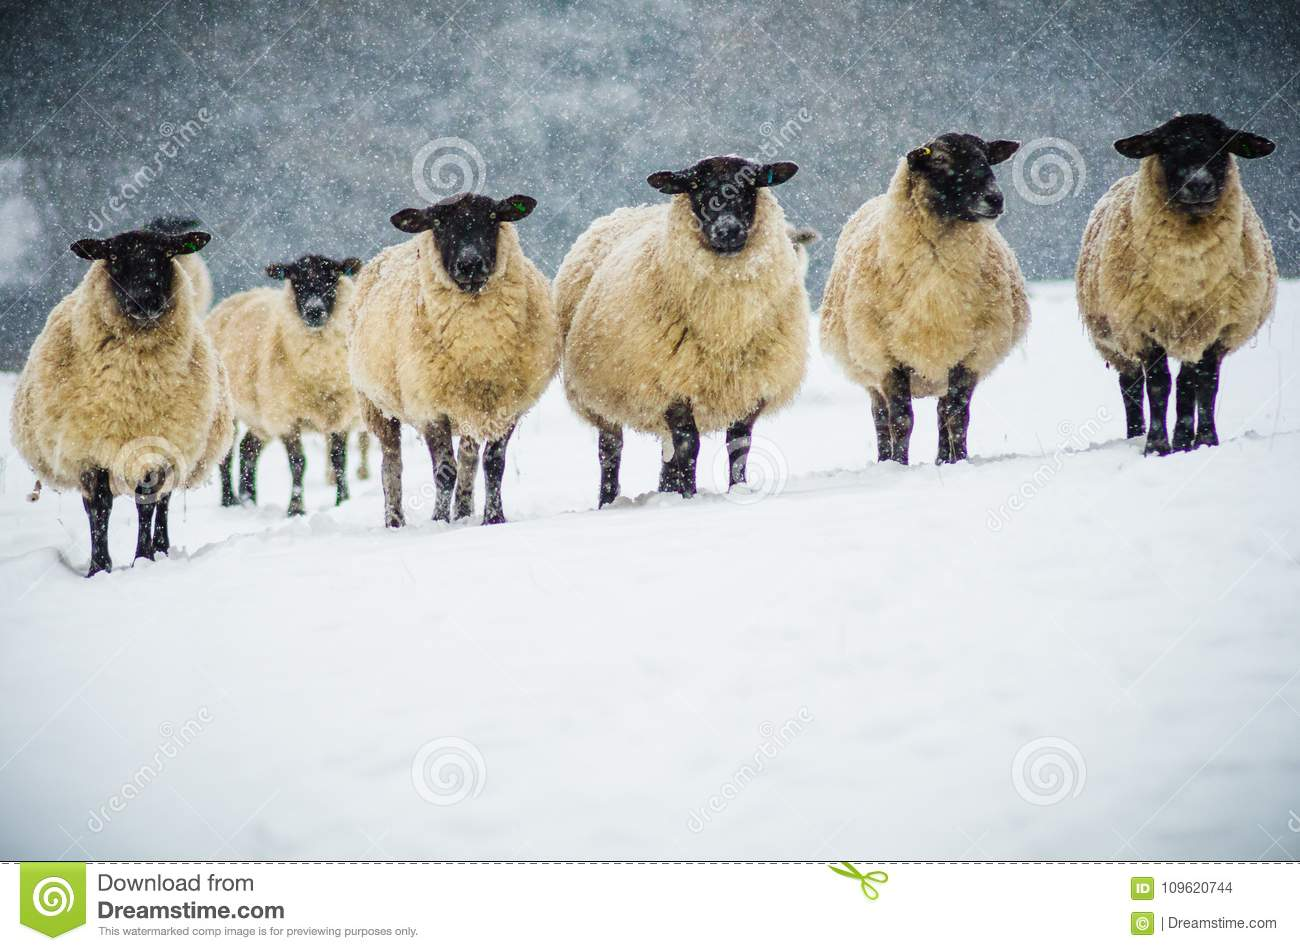 A herd of sheep in the snow